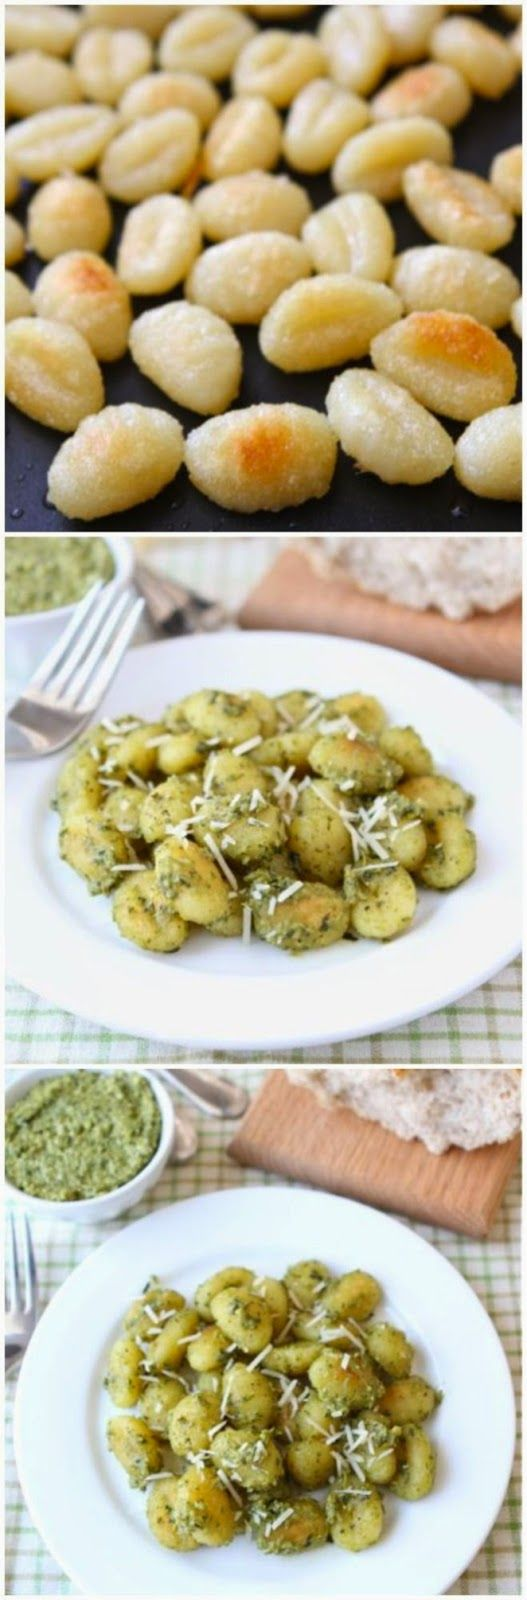 Crispy Gnocchi With Basil Pesto ~ Italian recipes aren't only for pasta and pizza ones (but we surely love them as well) but there's also lots of different dishes.